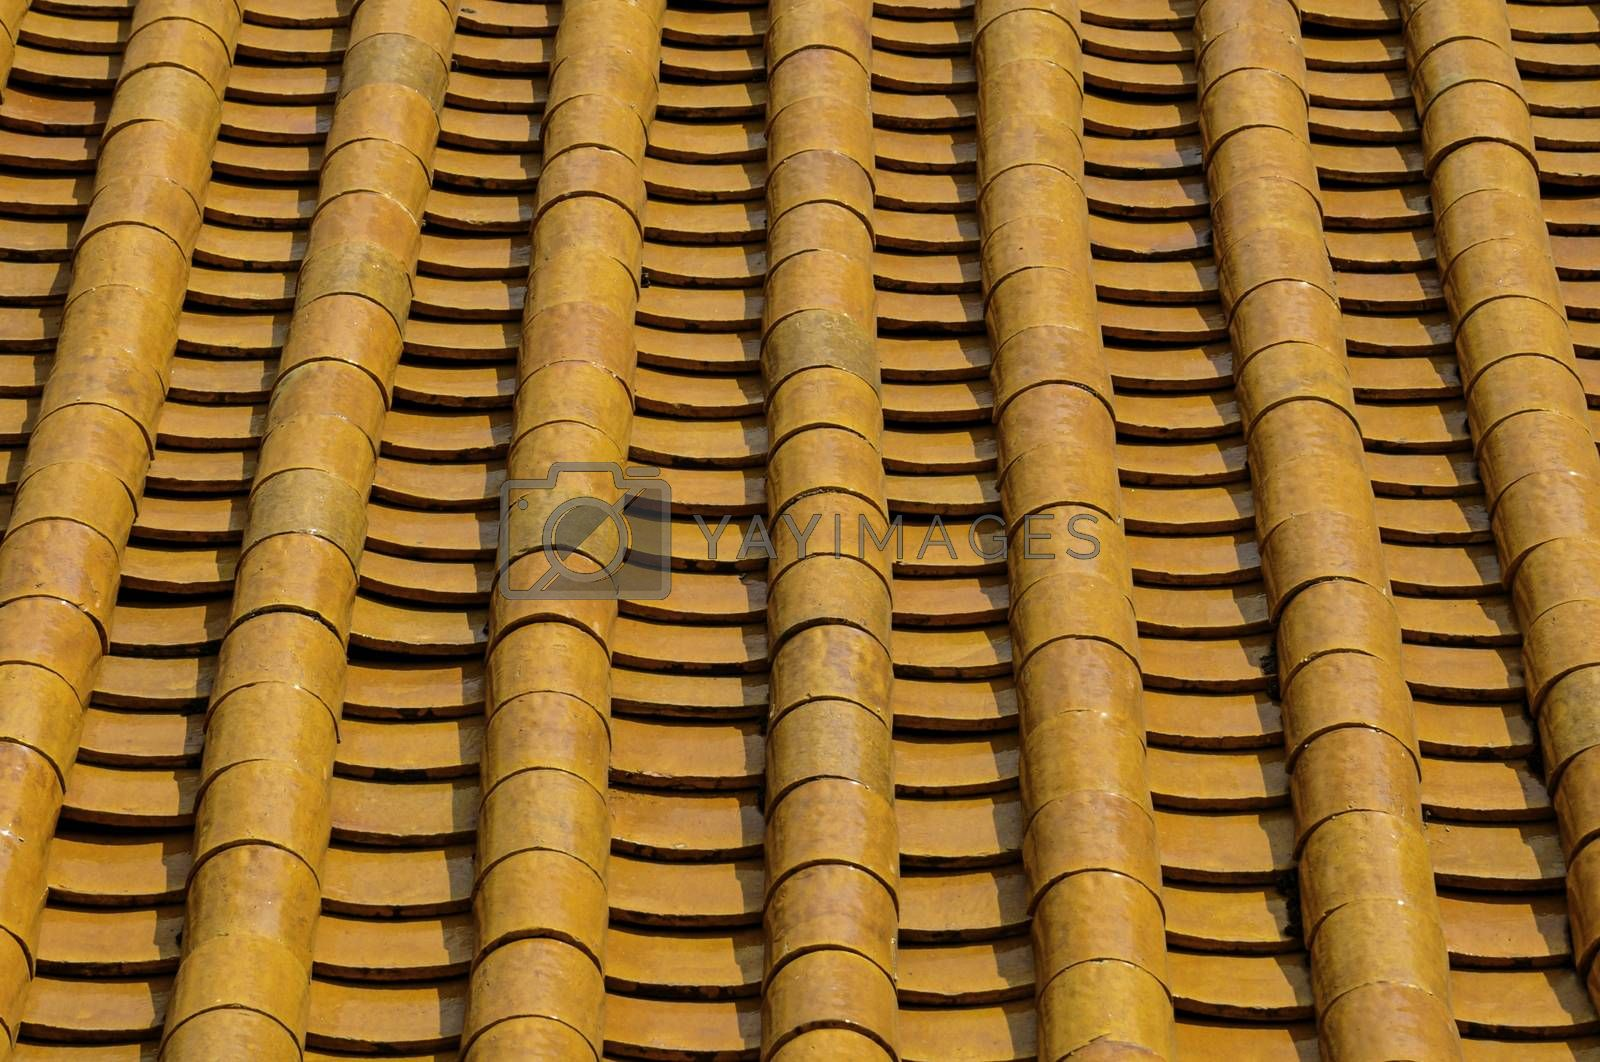 A perspective view of rows of old rustic terracotta roof tiles typical of those found on older traditional buildings in Asia and the Mediterranean.